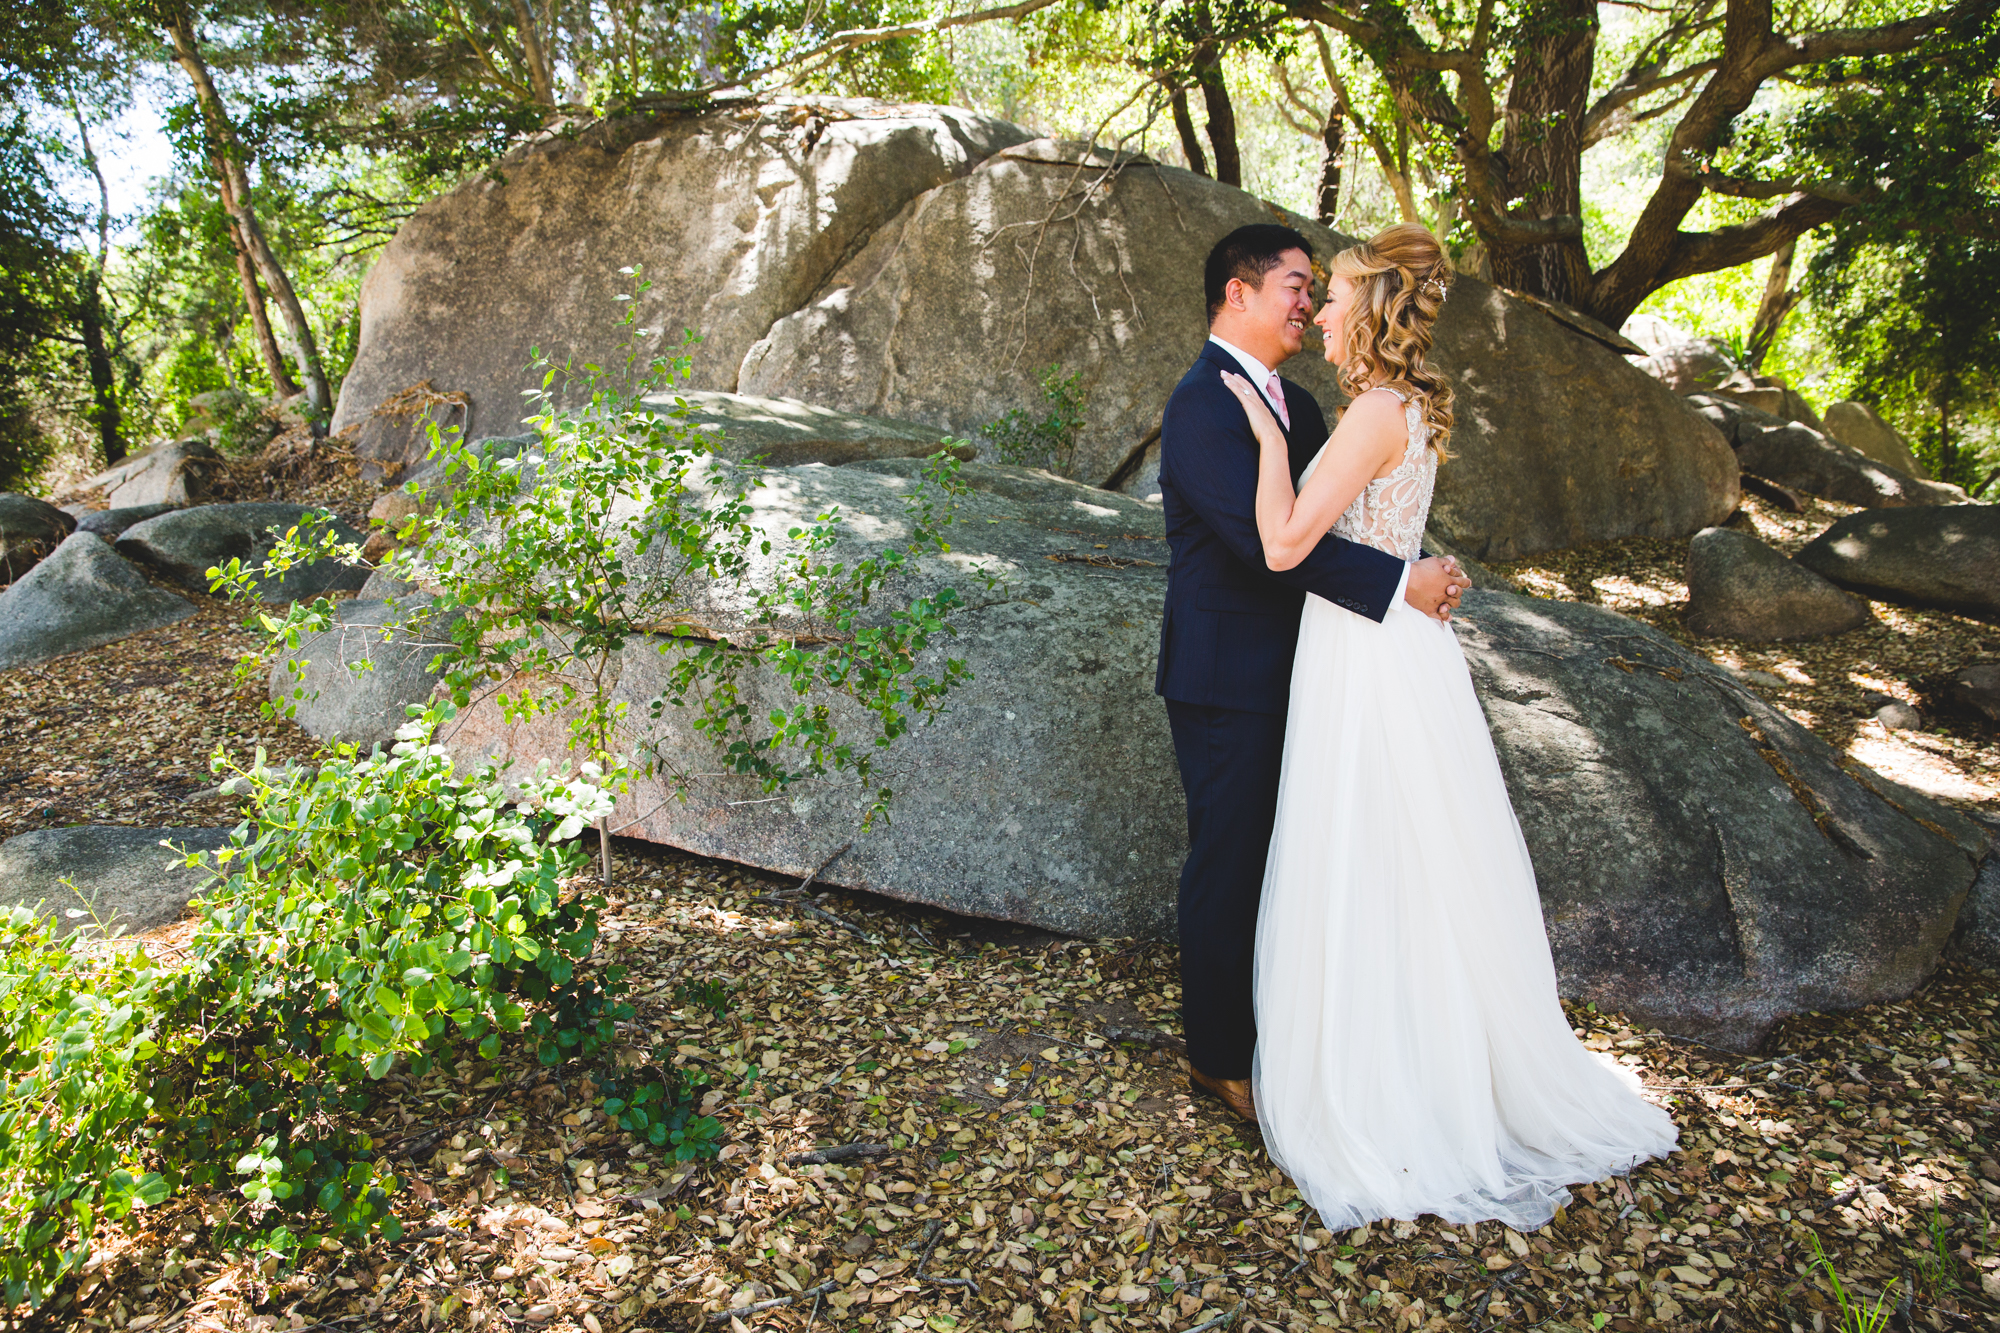 sd wedding-12.jpg